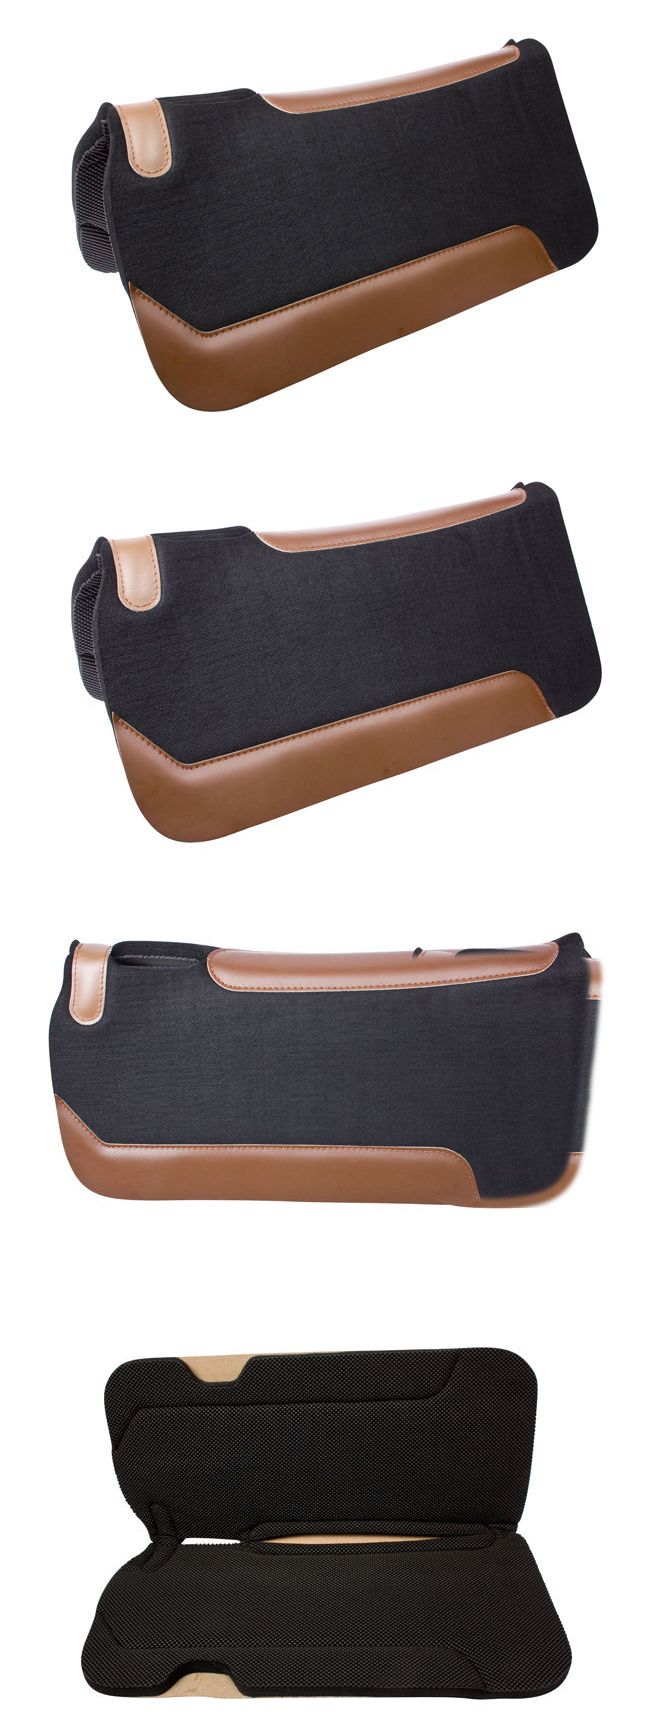 Saddle Pads 47308: Black Wool Felt Therapeutic Western Horse Saddle Gel Shock Pad BUY IT NOW ONLY: $66.49